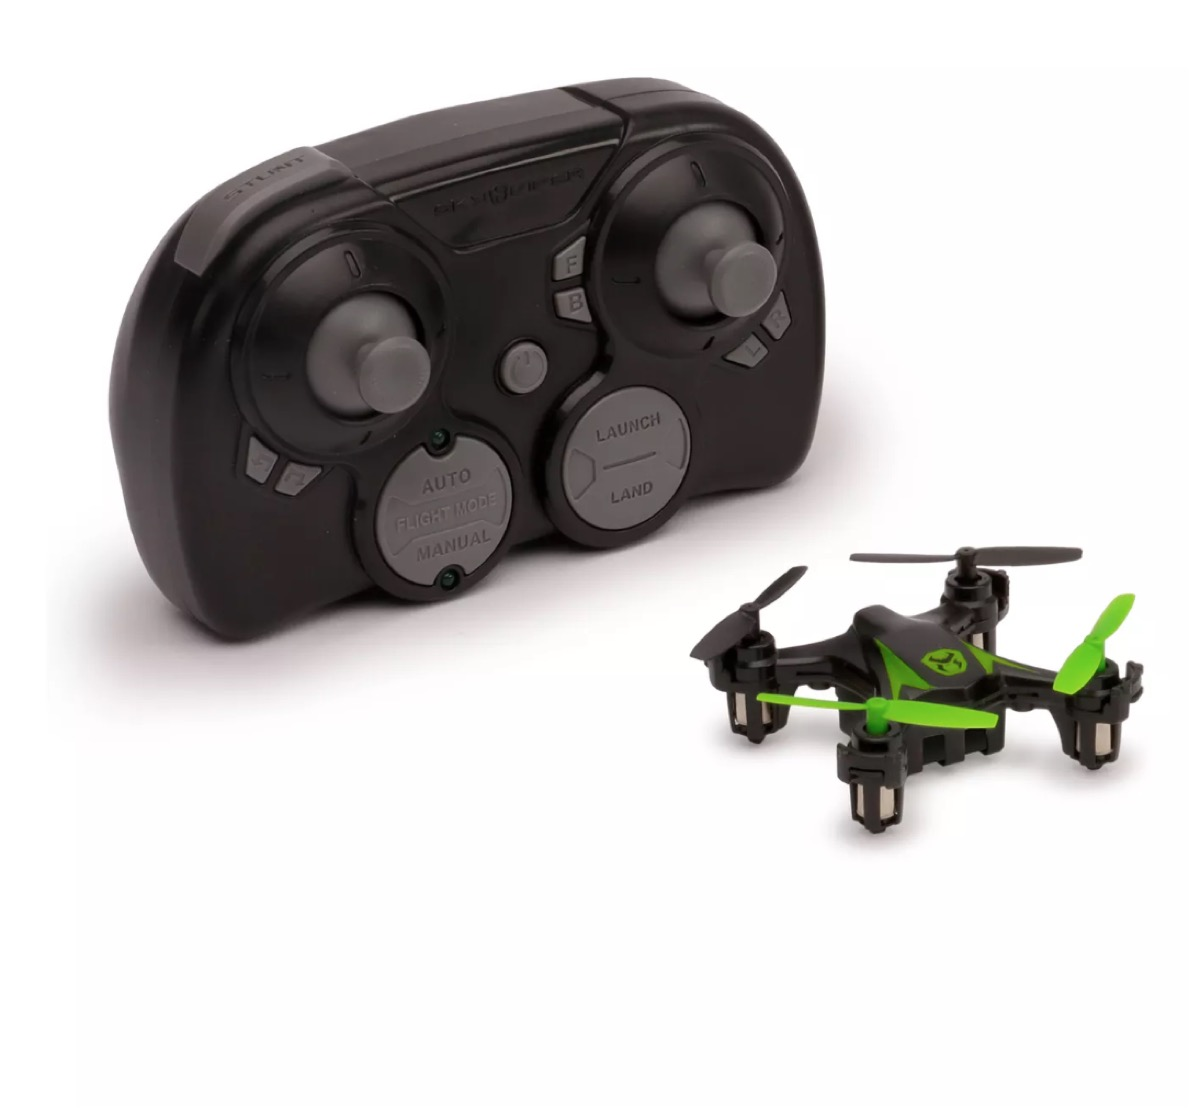 skyviper mini drone in green and black with black and gray controller